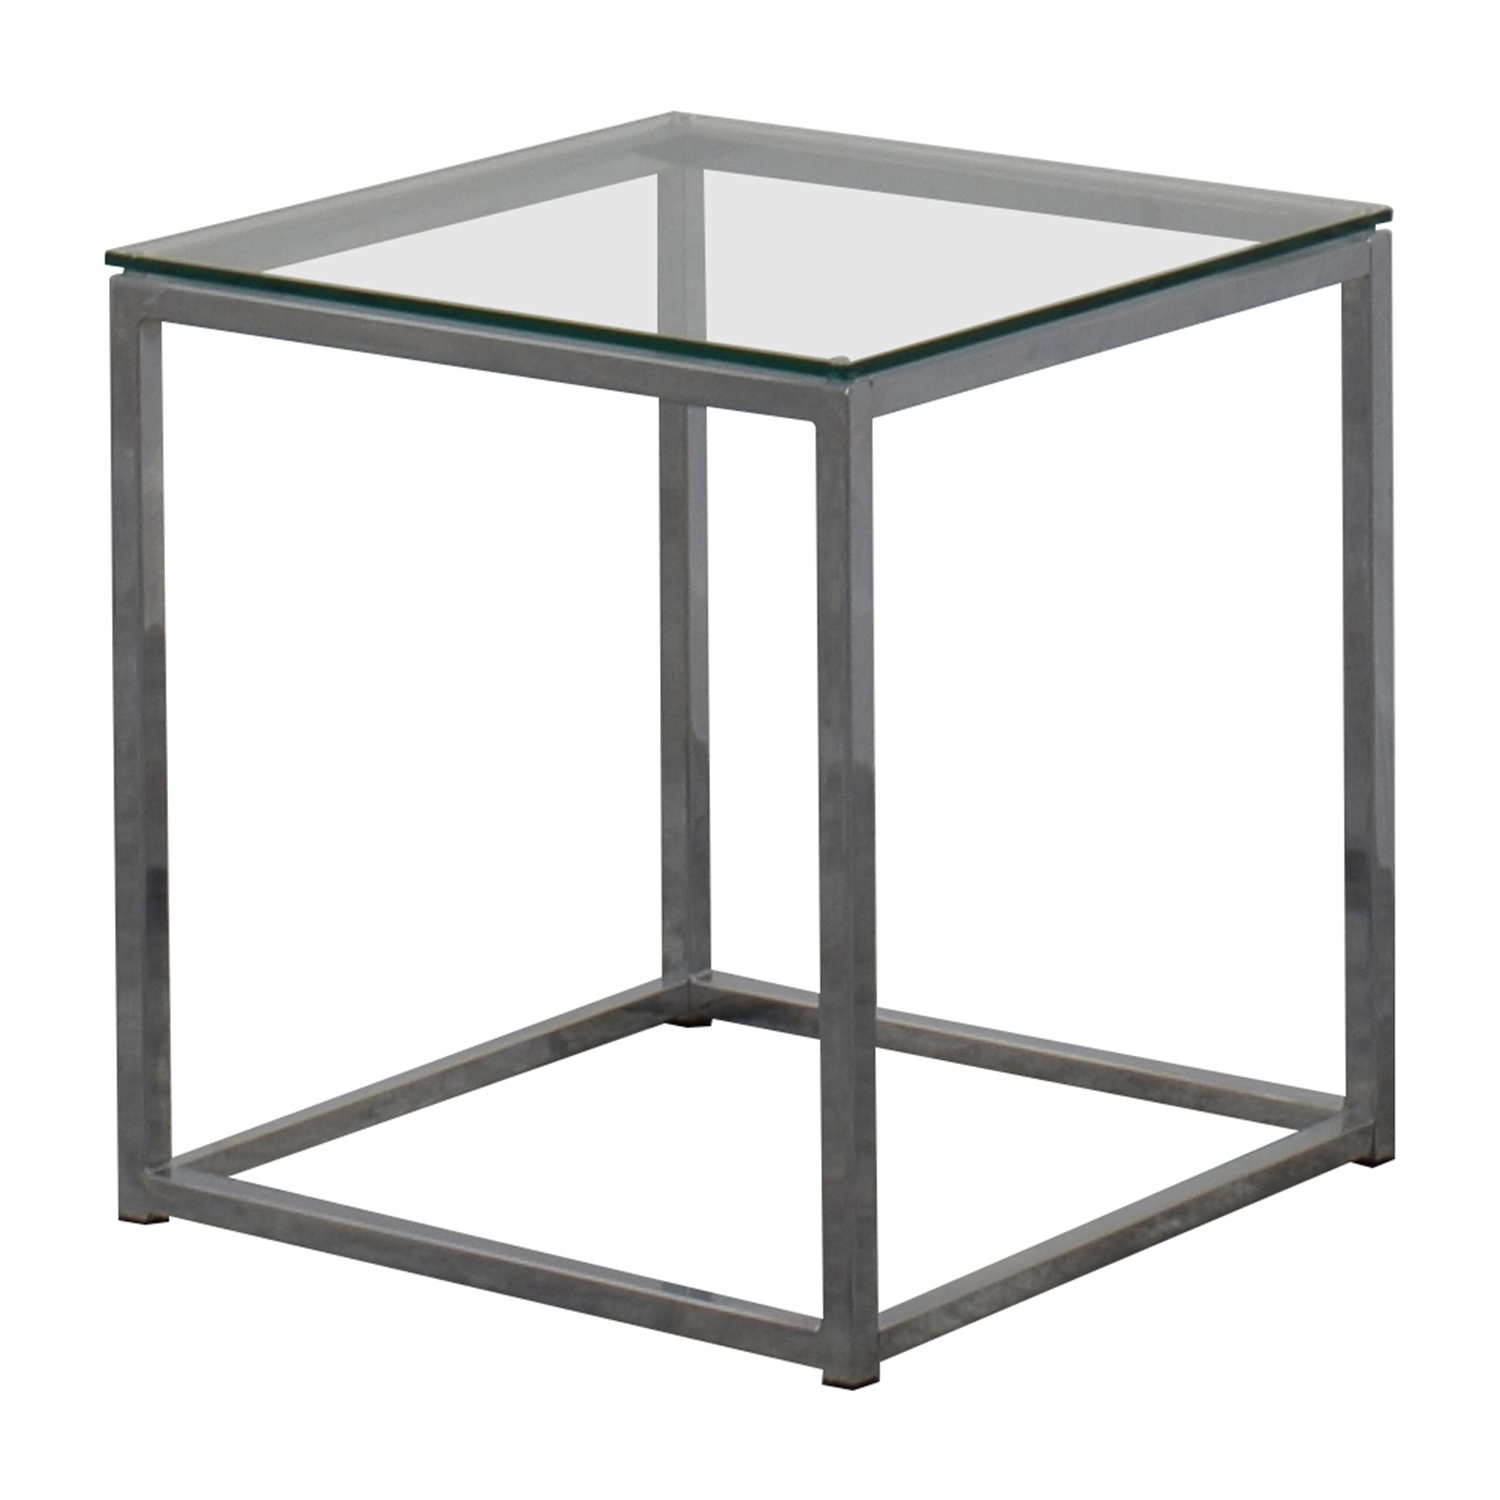 [%fashionable Smart Glass Top Coffee Tables Throughout 80% Off – Cb2 Cb2 Smart Glass Top Side Table / Tables|80% Off – Cb2 Cb2 Smart Glass Top Side Table / Tables Pertaining To Popular Smart Glass Top Coffee Tables%] (View 11 of 20)